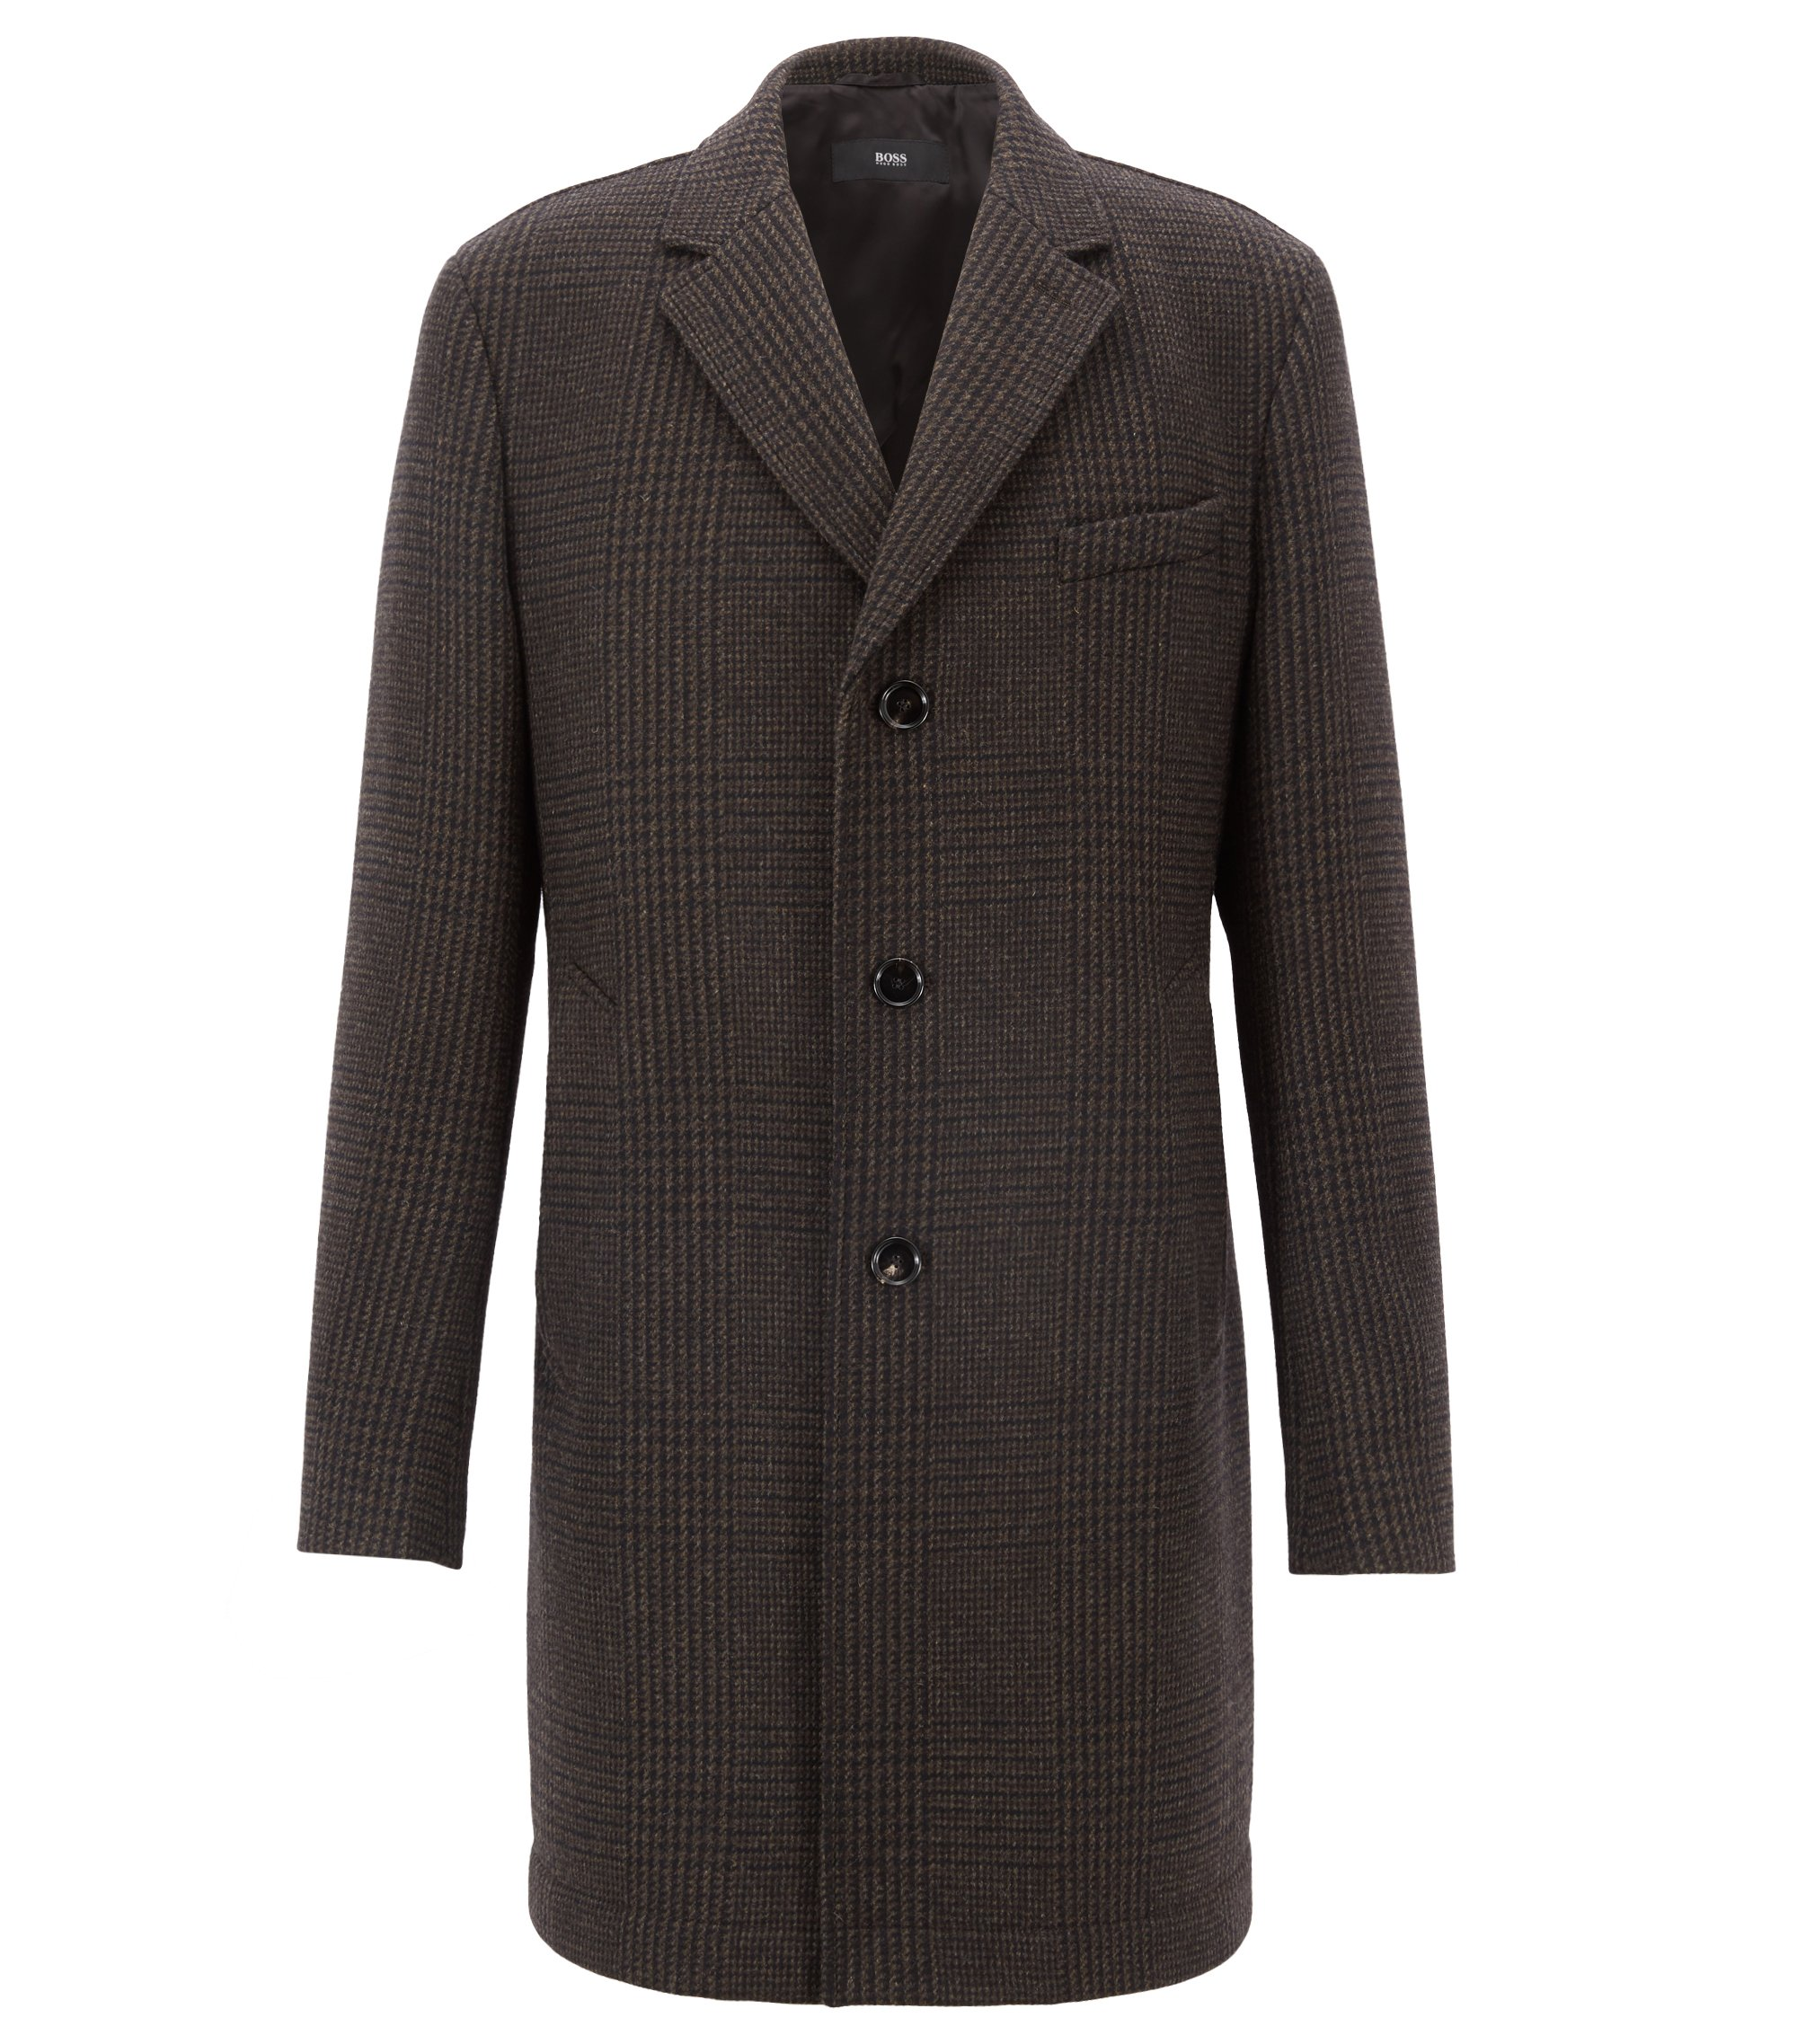 Cappotto slim fit in misto lana vergine a quadri, Marrone scuro